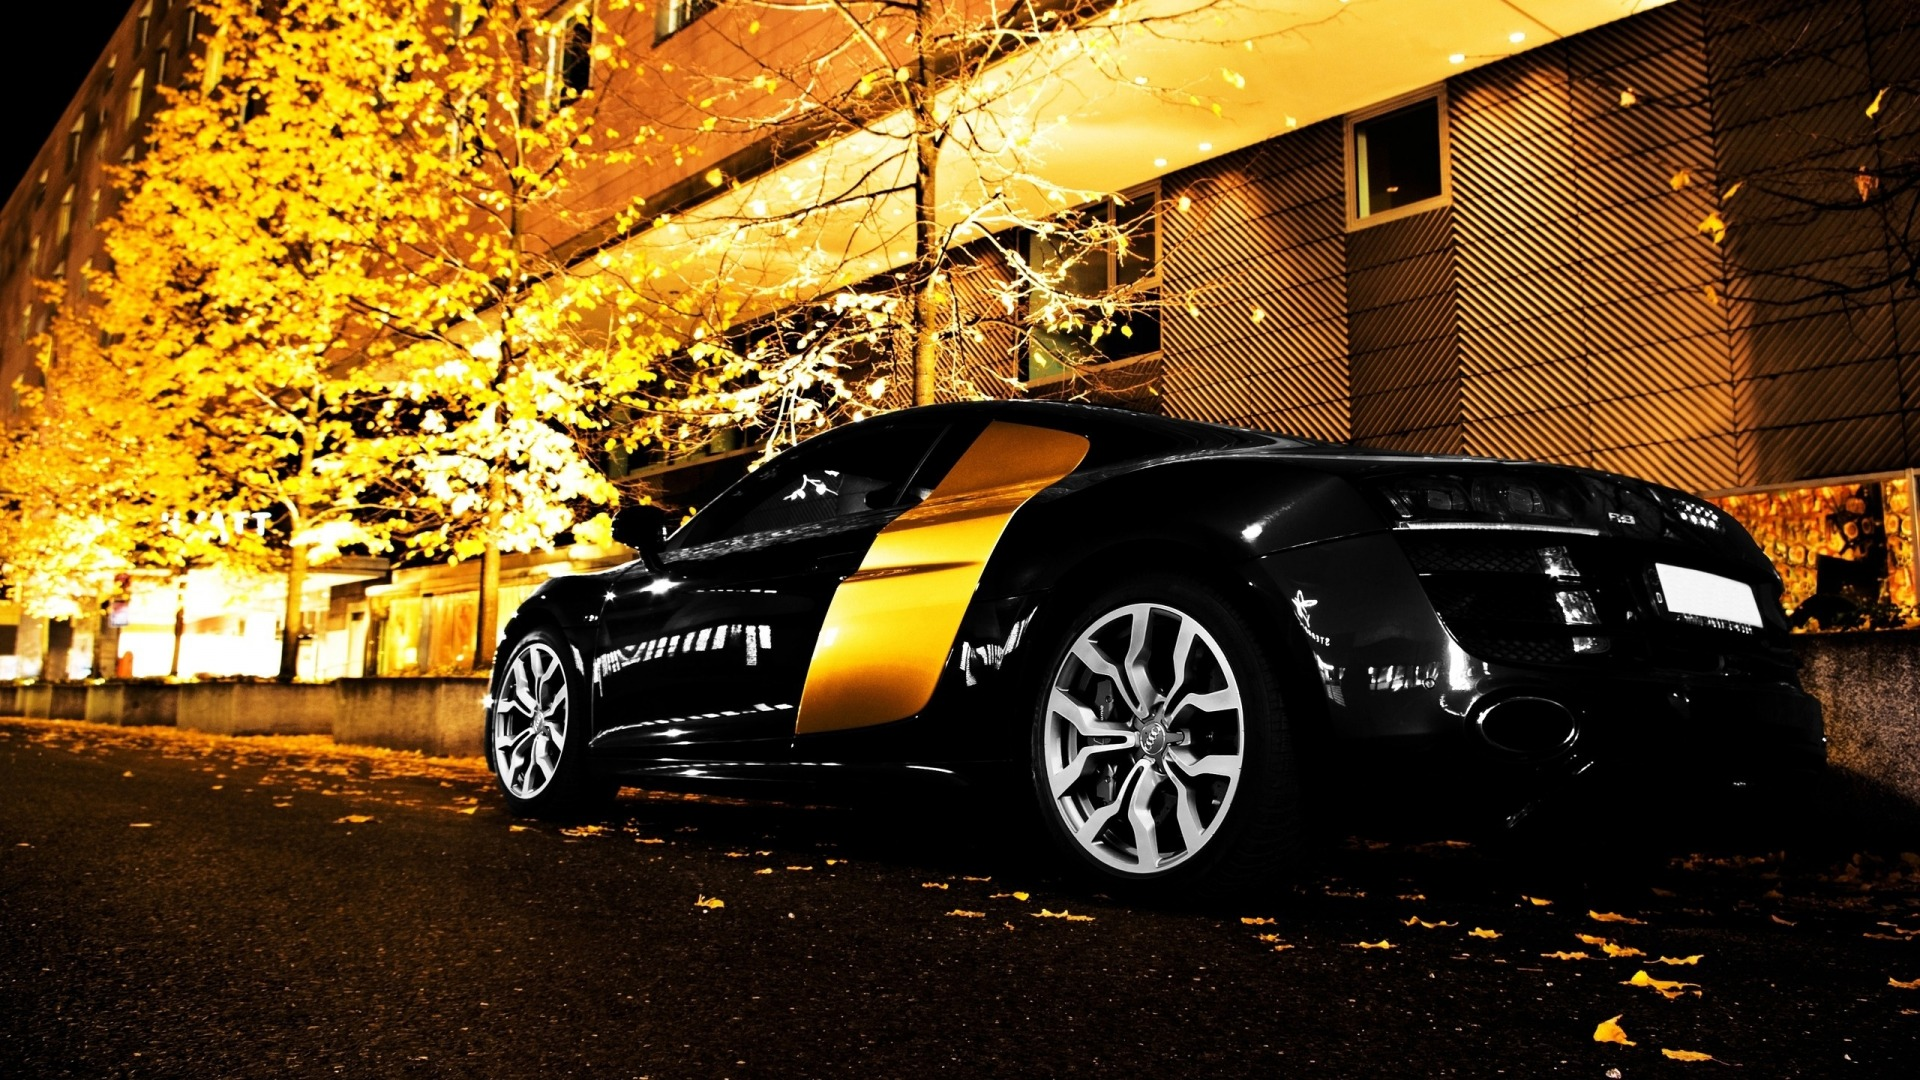 Cars Hd Wallpapers For Blackberry: Cool Car Wallpapers For Desktop